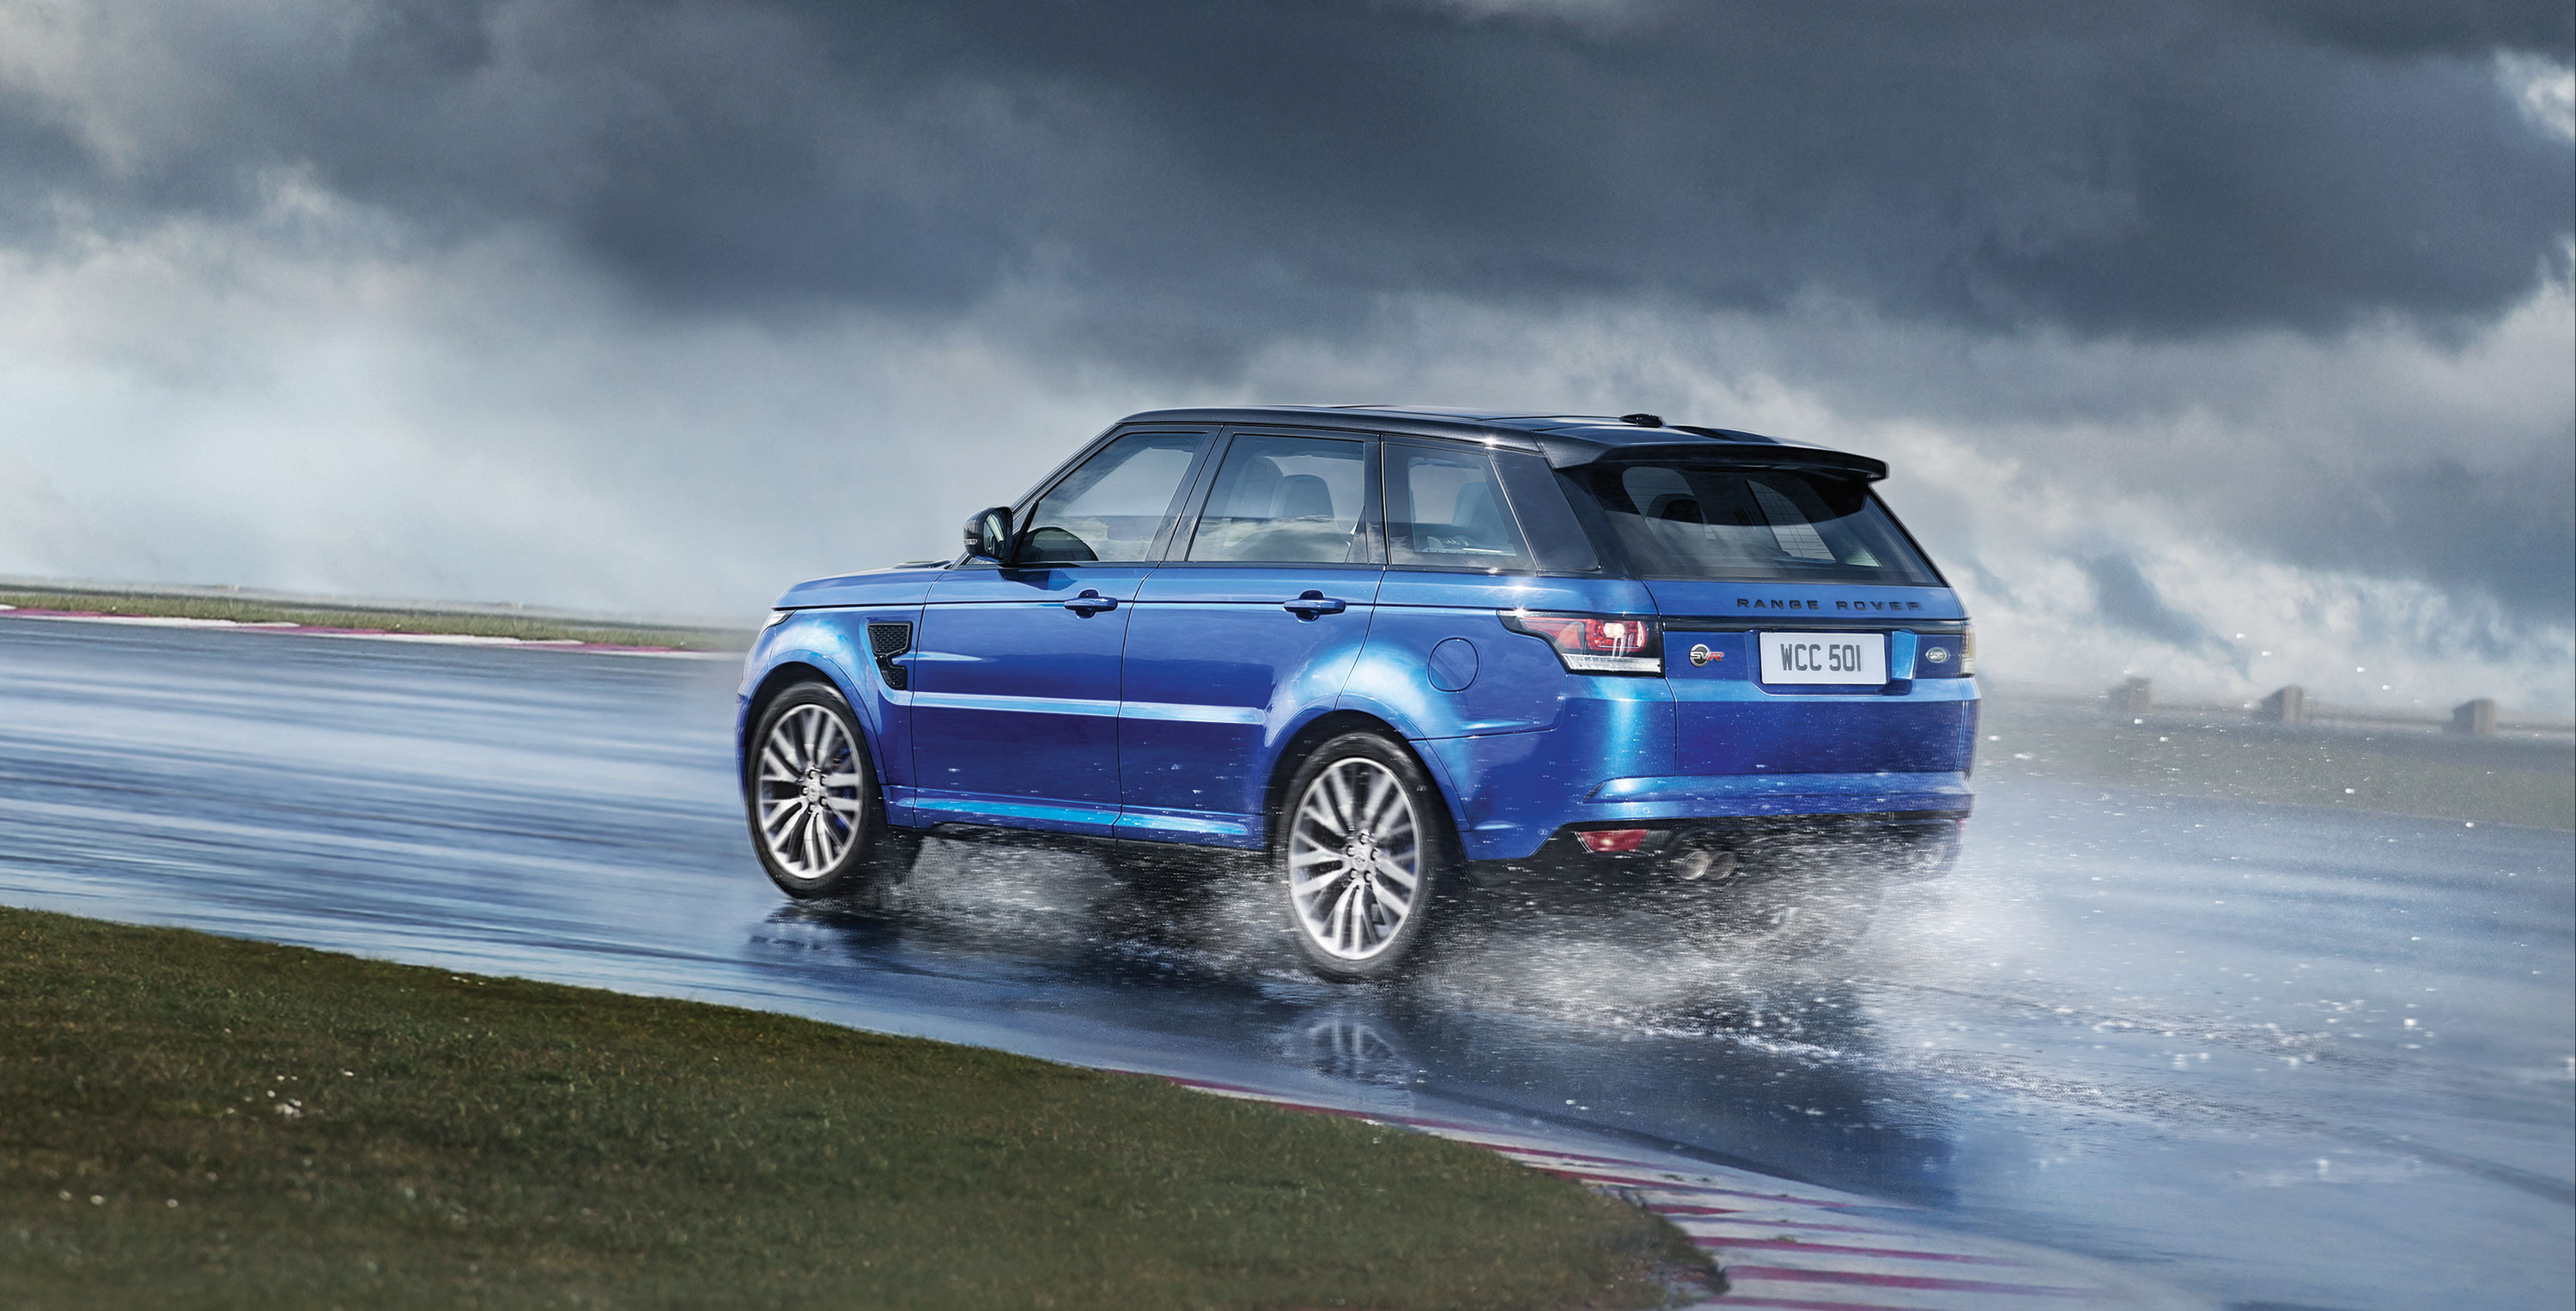 2015 land rover range rover sport svr photos specs and review rs. Black Bedroom Furniture Sets. Home Design Ideas